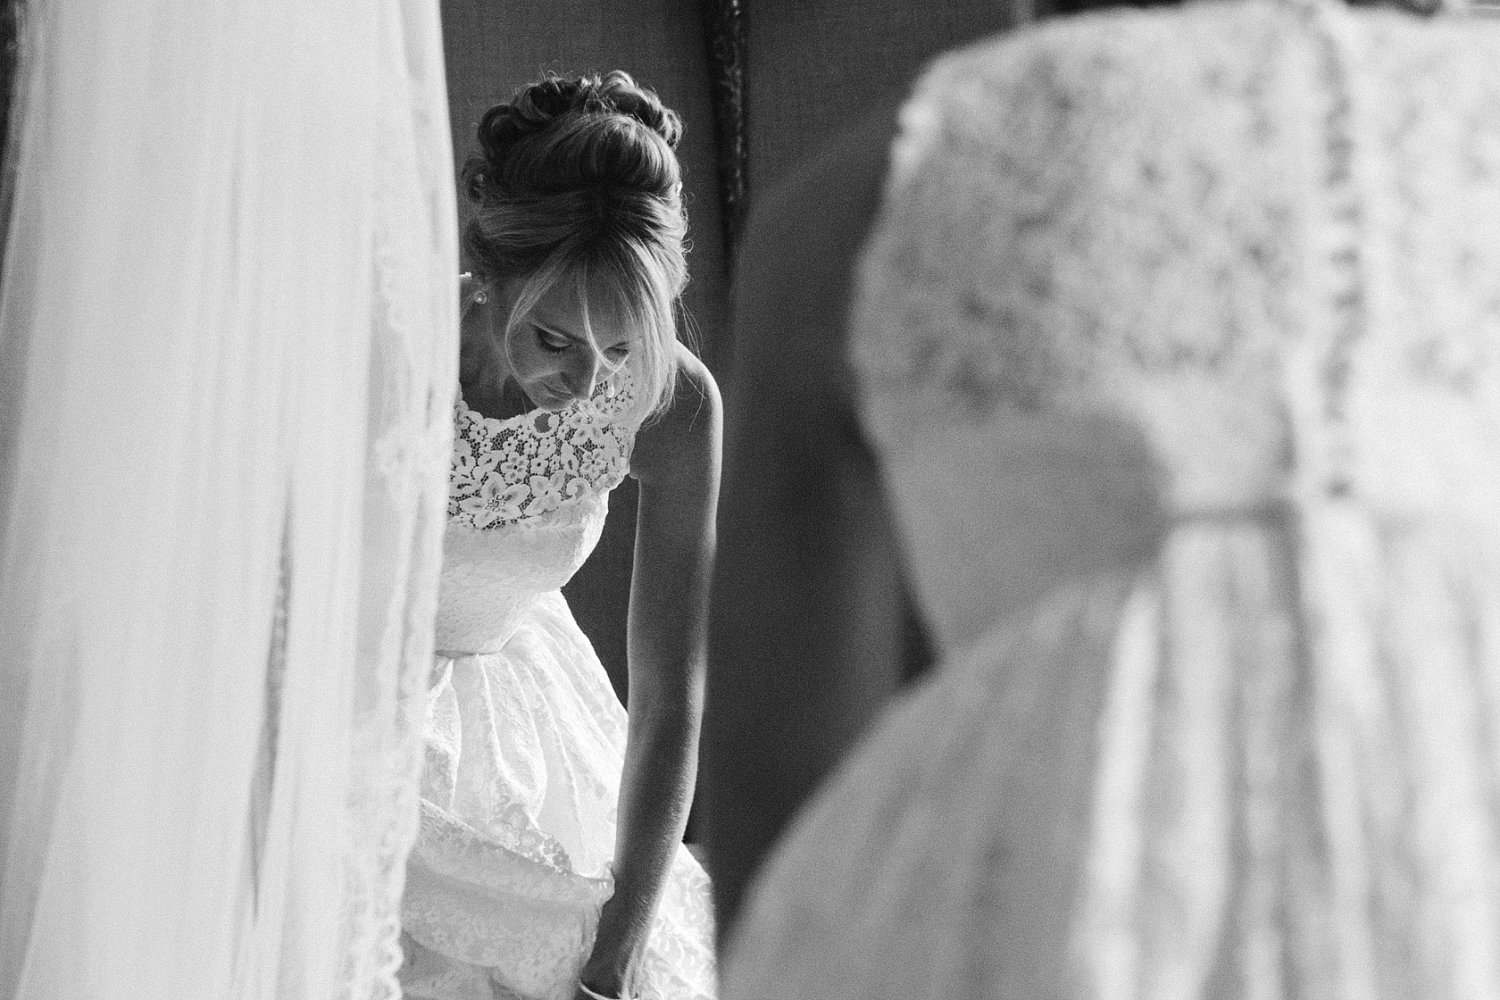 Bridal prep at a luxury wedding at Carlowrie Castle. Bride wearing Caroline Castigliano photo